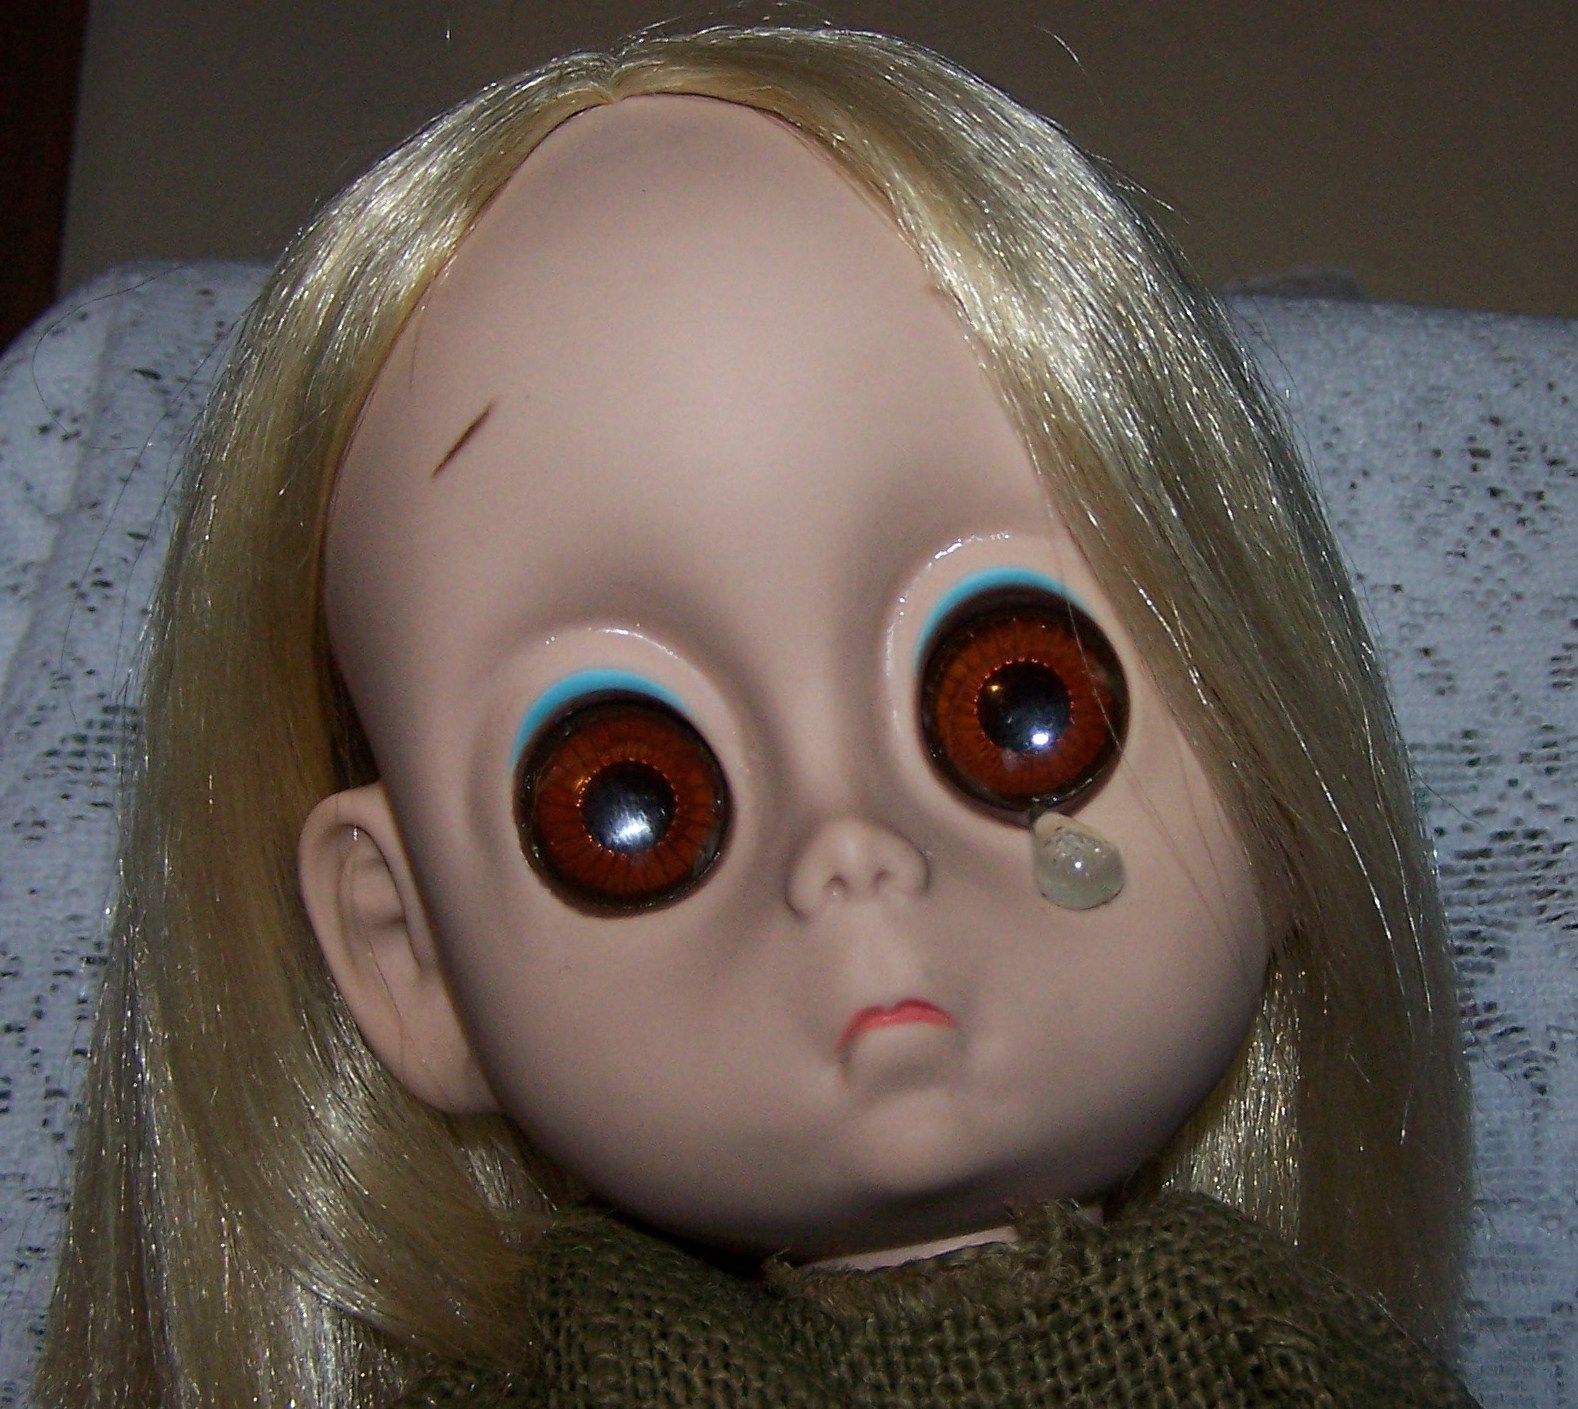 Little Miss No Name doll.  I had one of these in the '60's.  Scary, sad doll!! LOL!